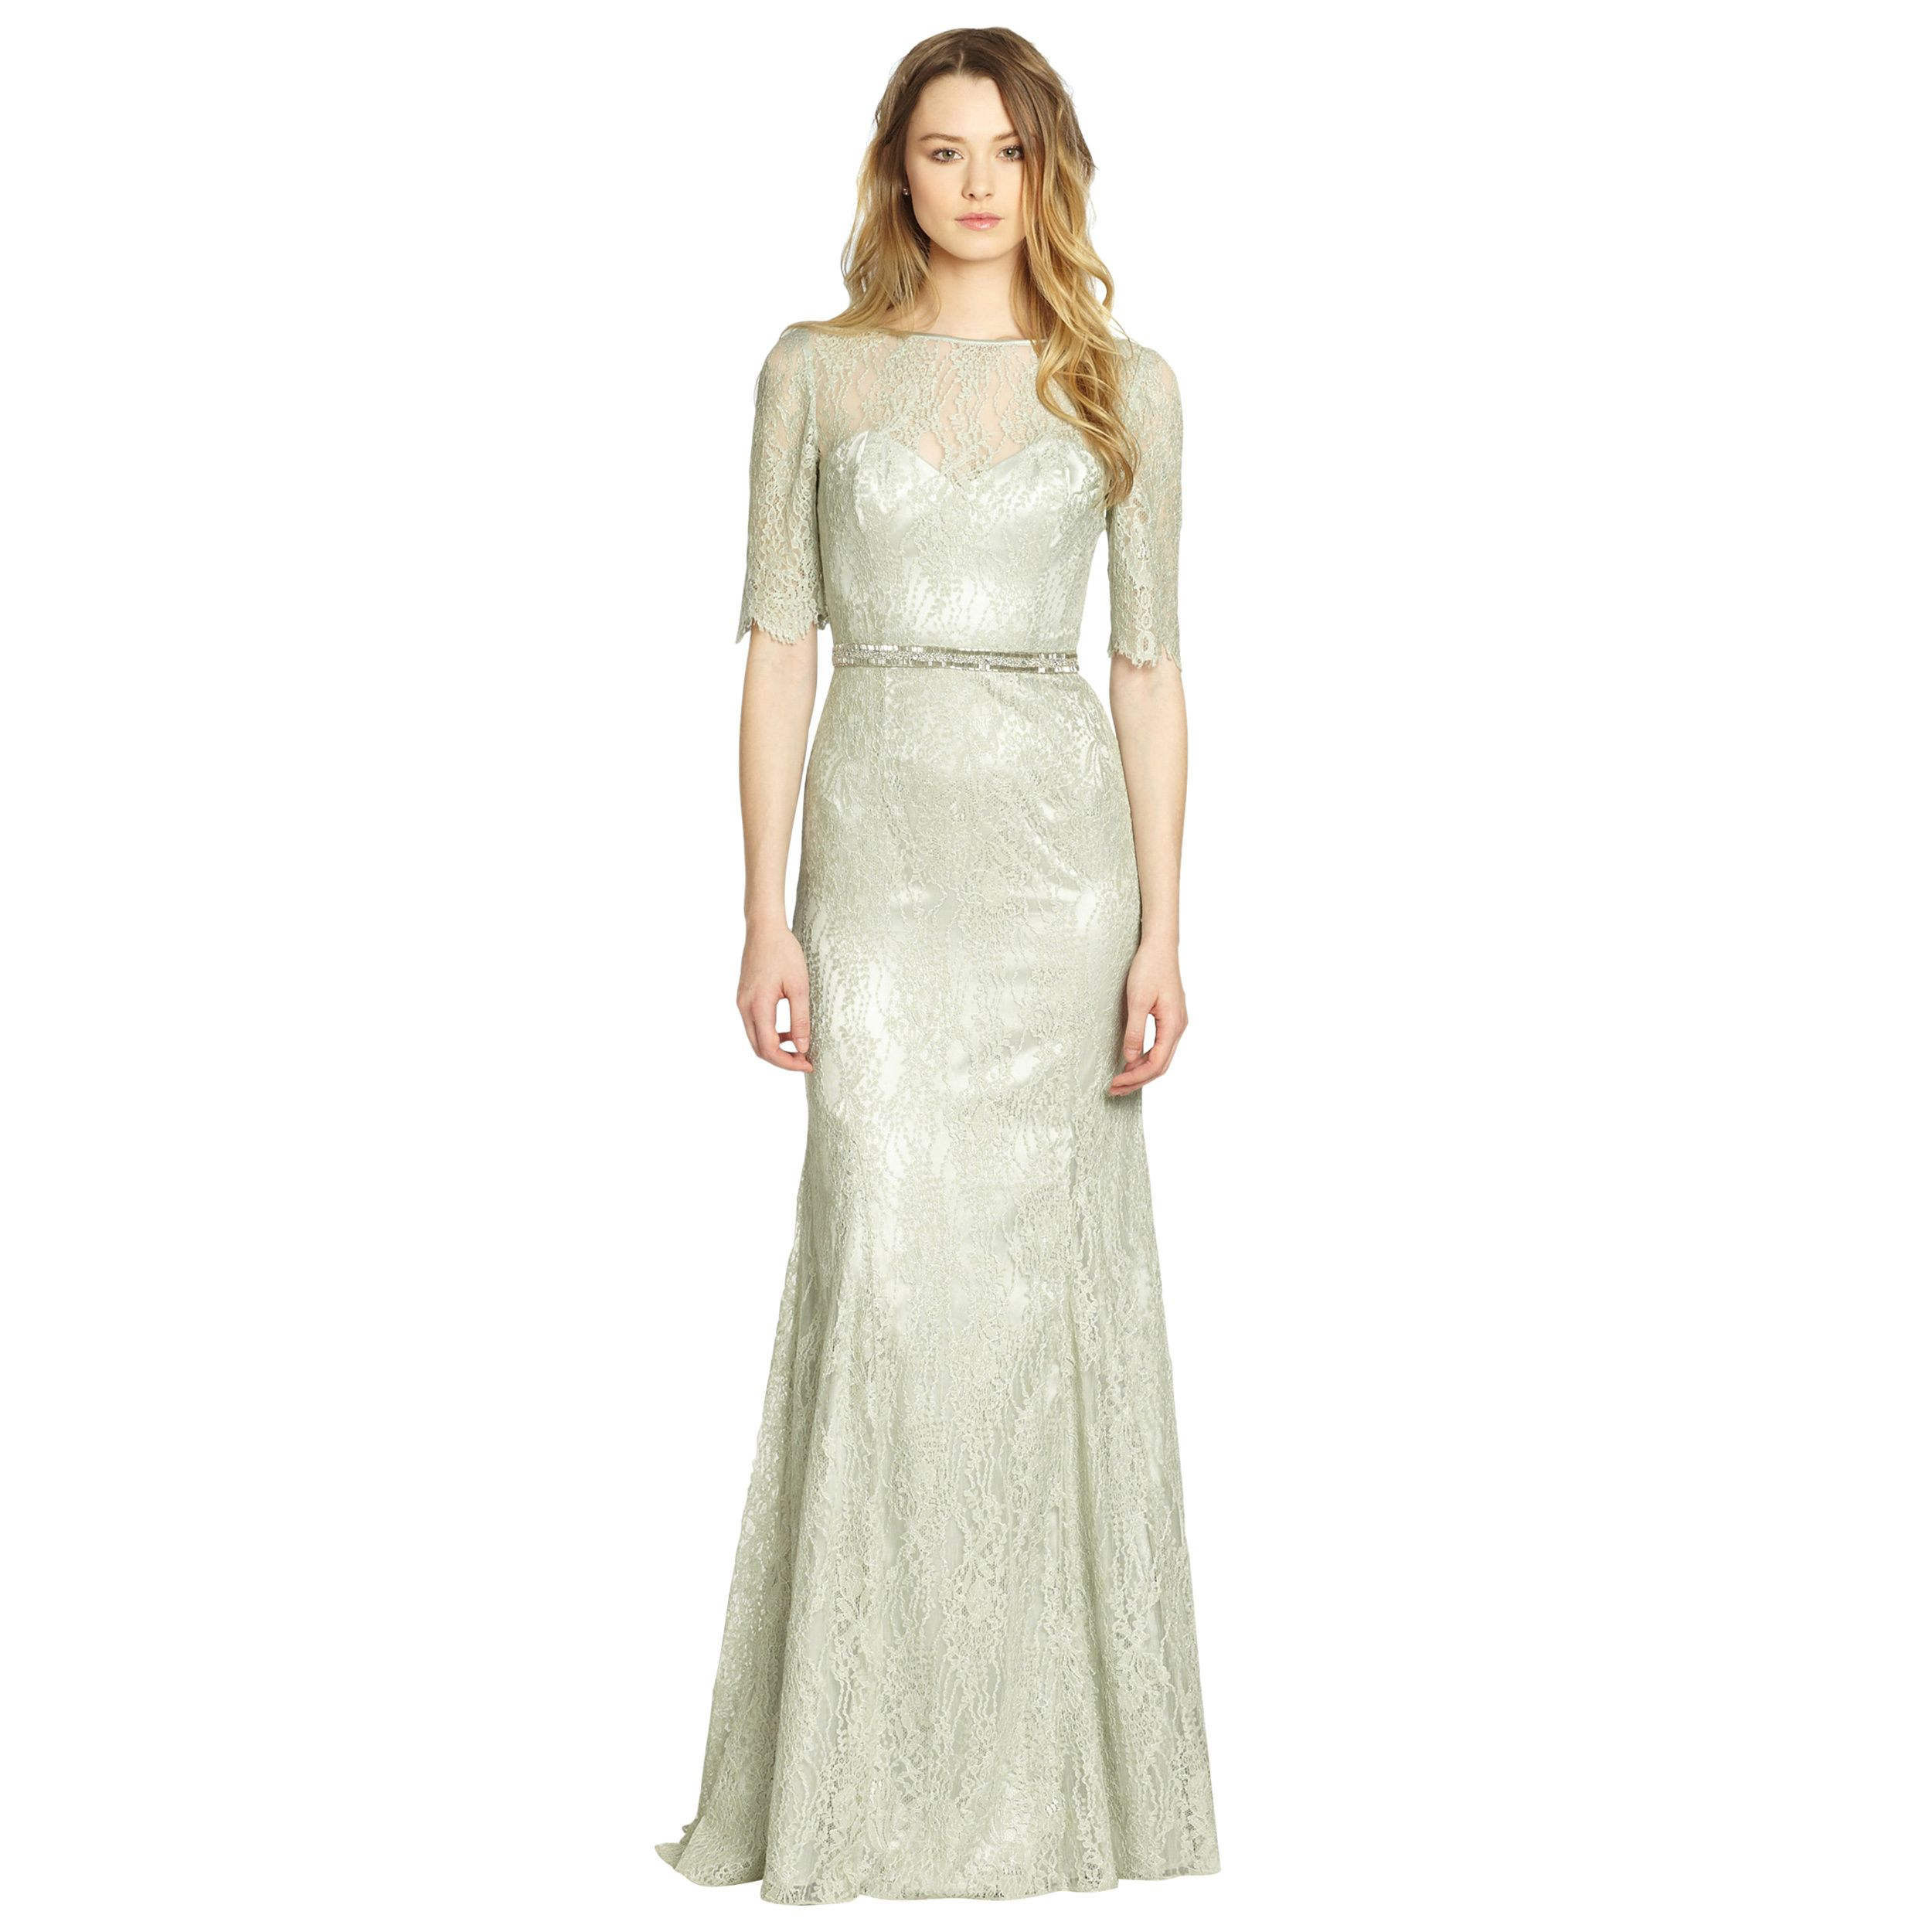 Silver With Net Simple Off White Dress